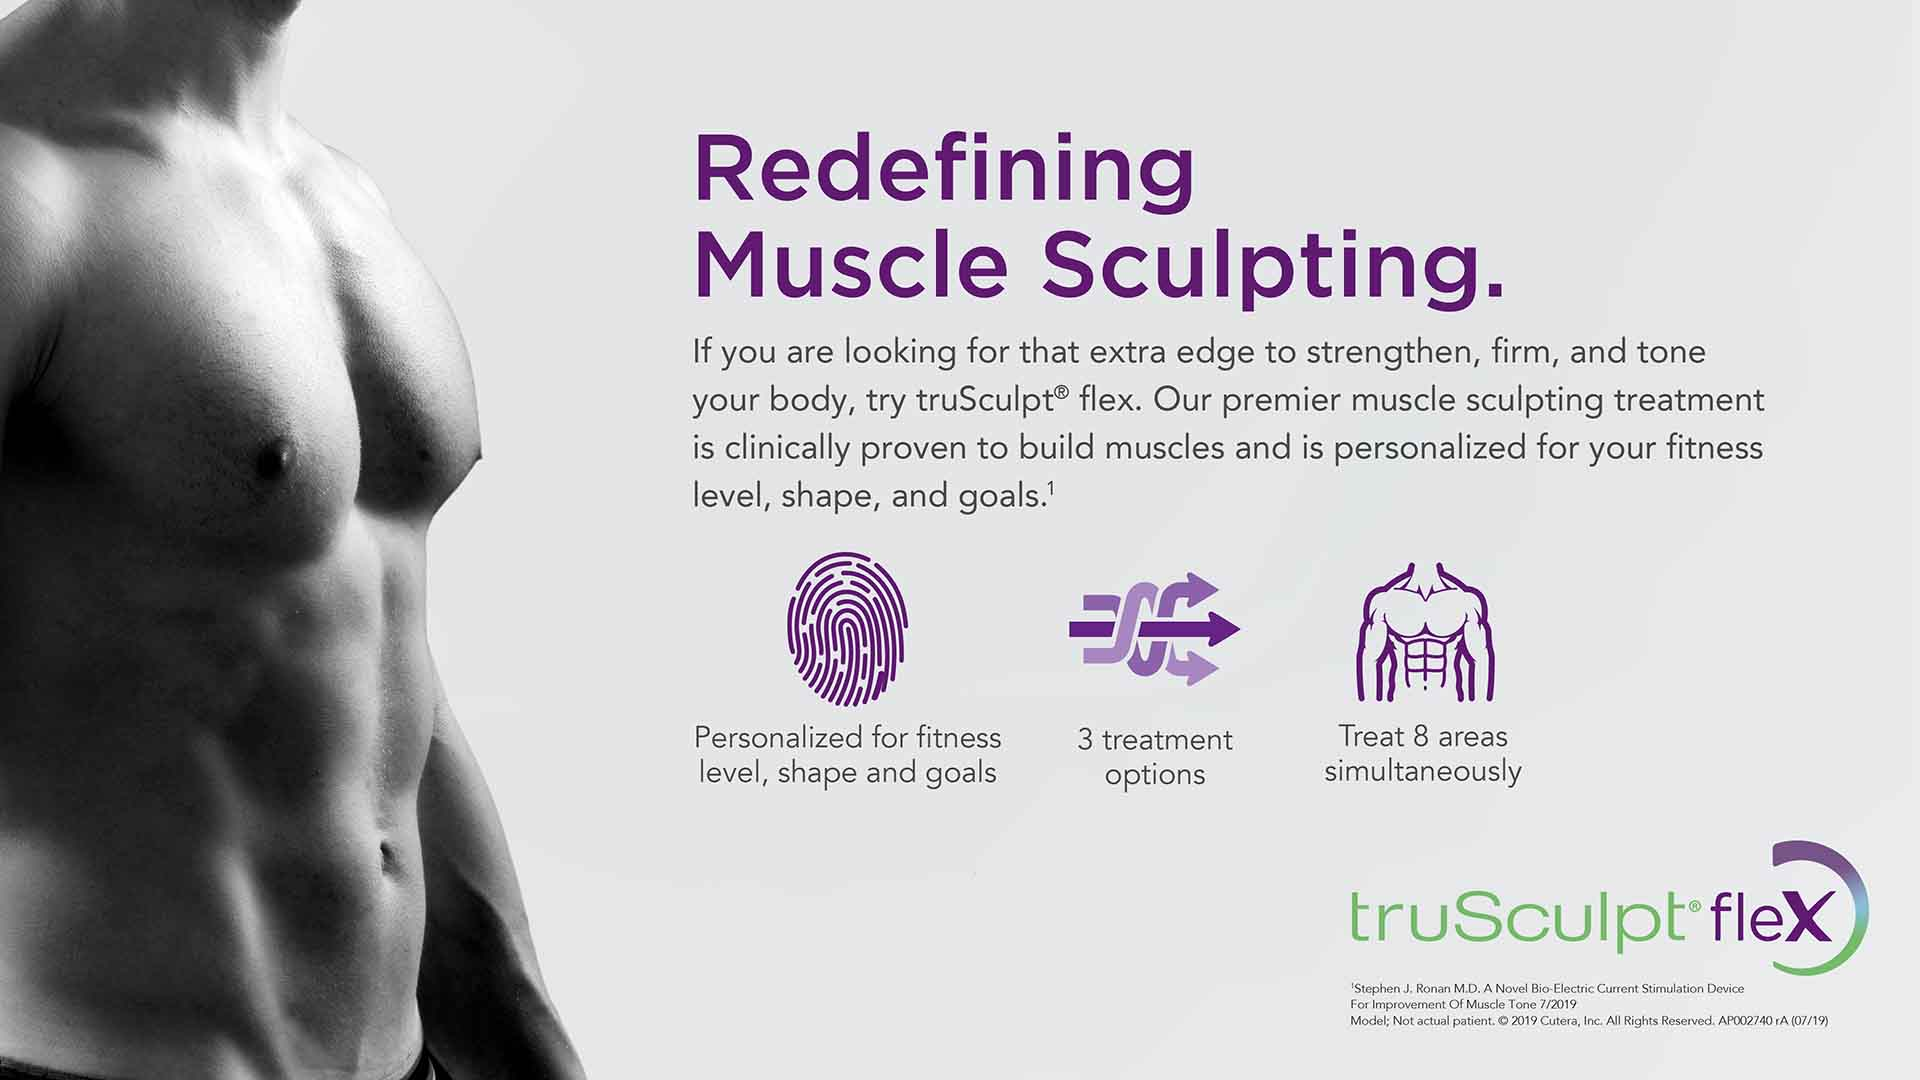 truSculpt flex muscle sculpting